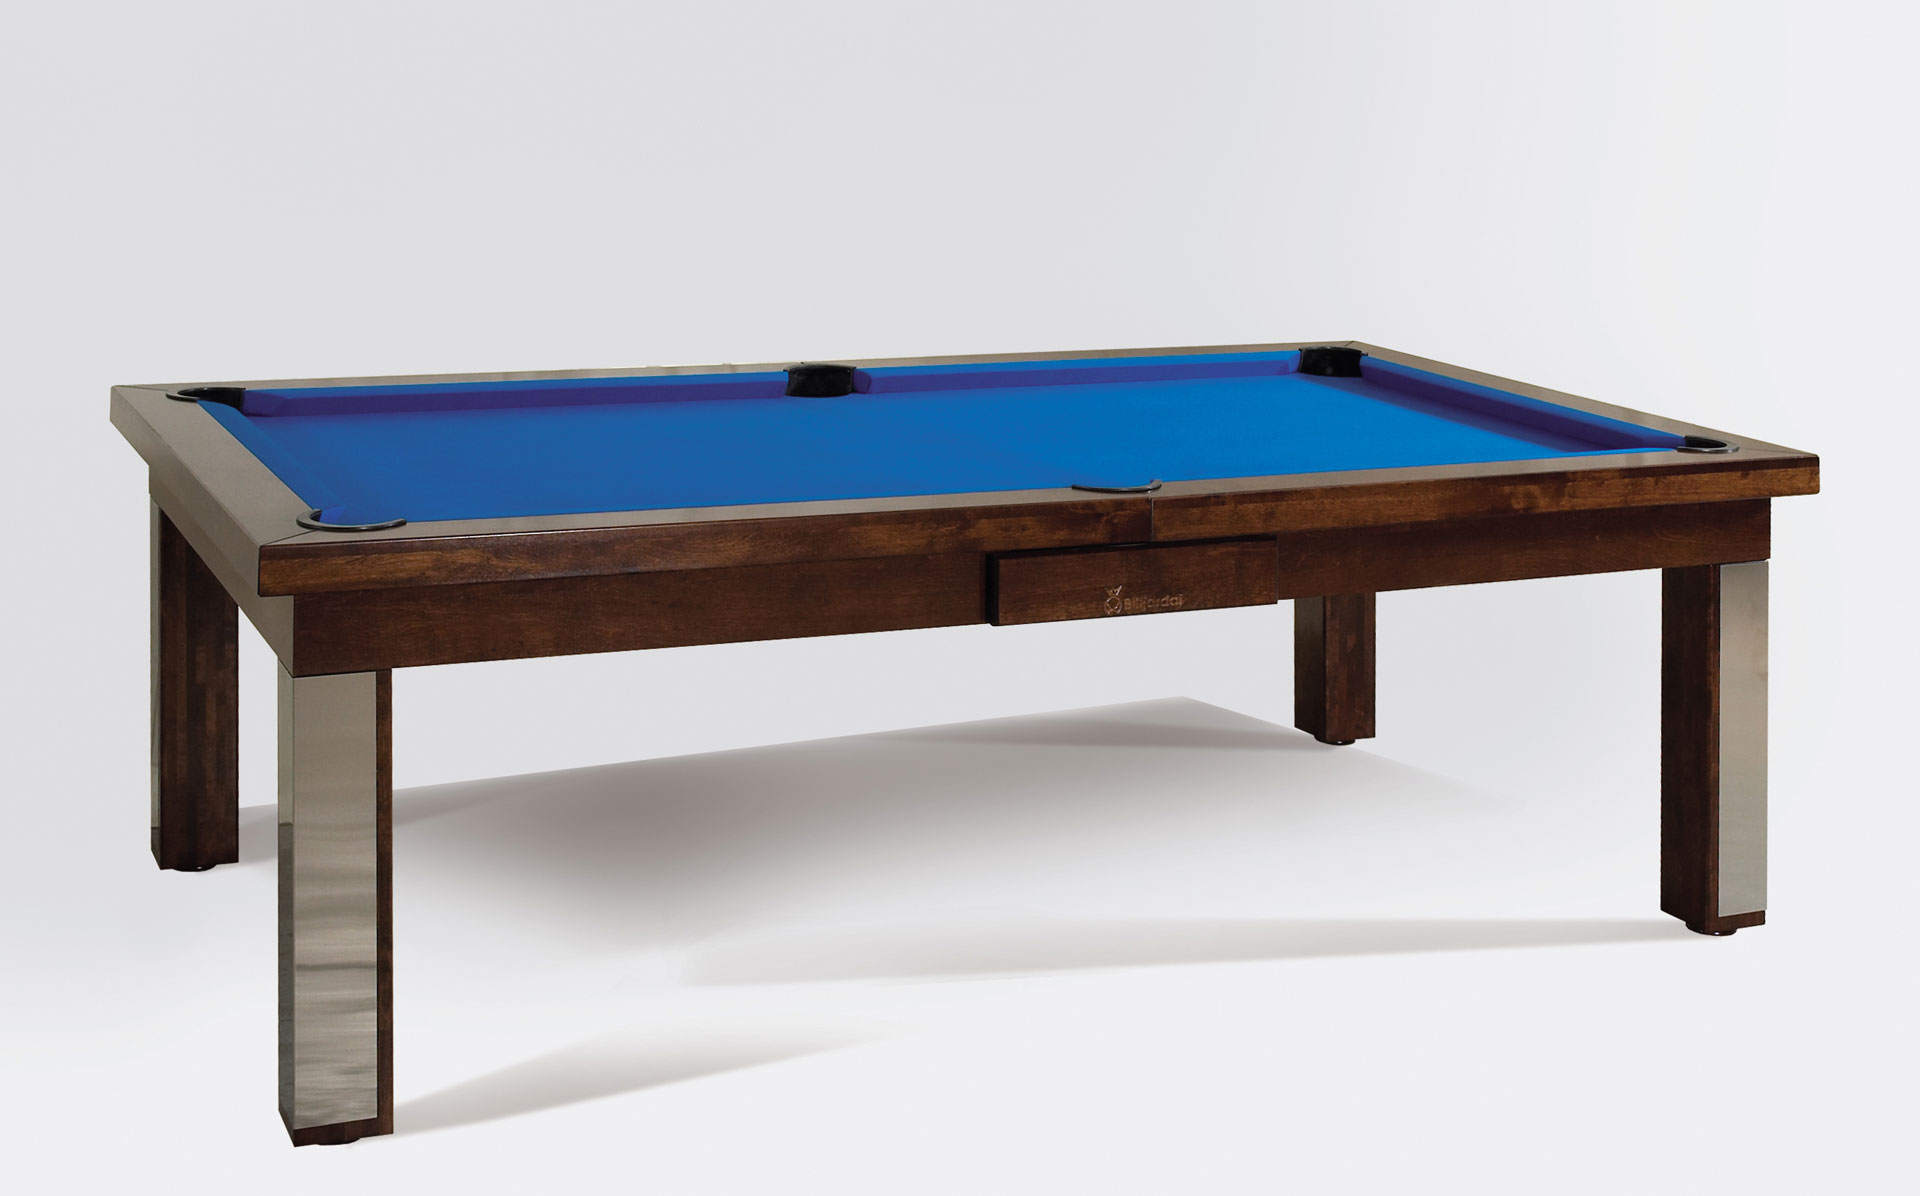 modern pool table luxury pool tables. Black Bedroom Furniture Sets. Home Design Ideas